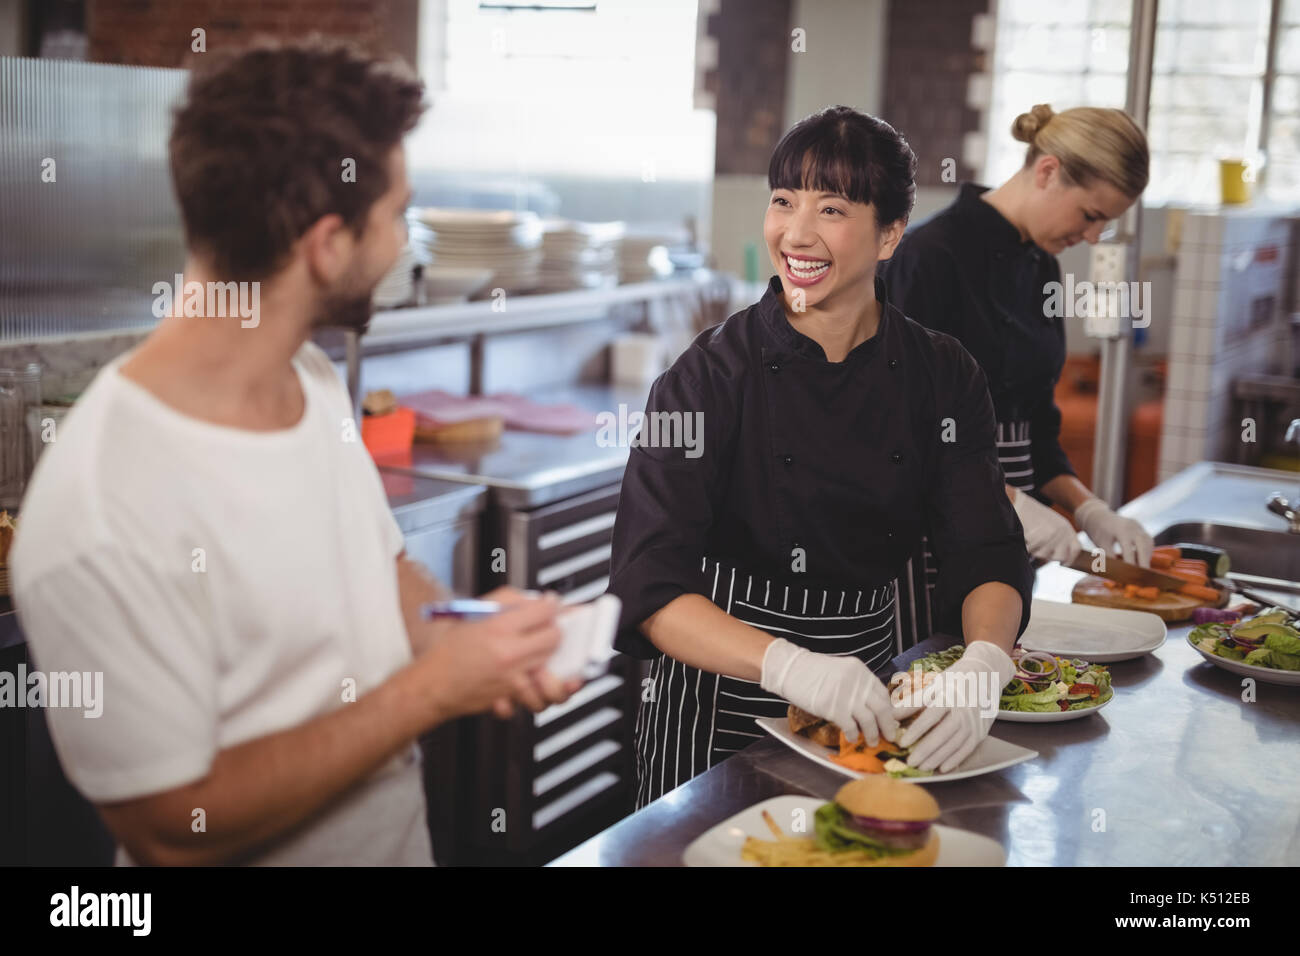 Cheerful waiter and female chef working in kitchen at cafe Stock Photo